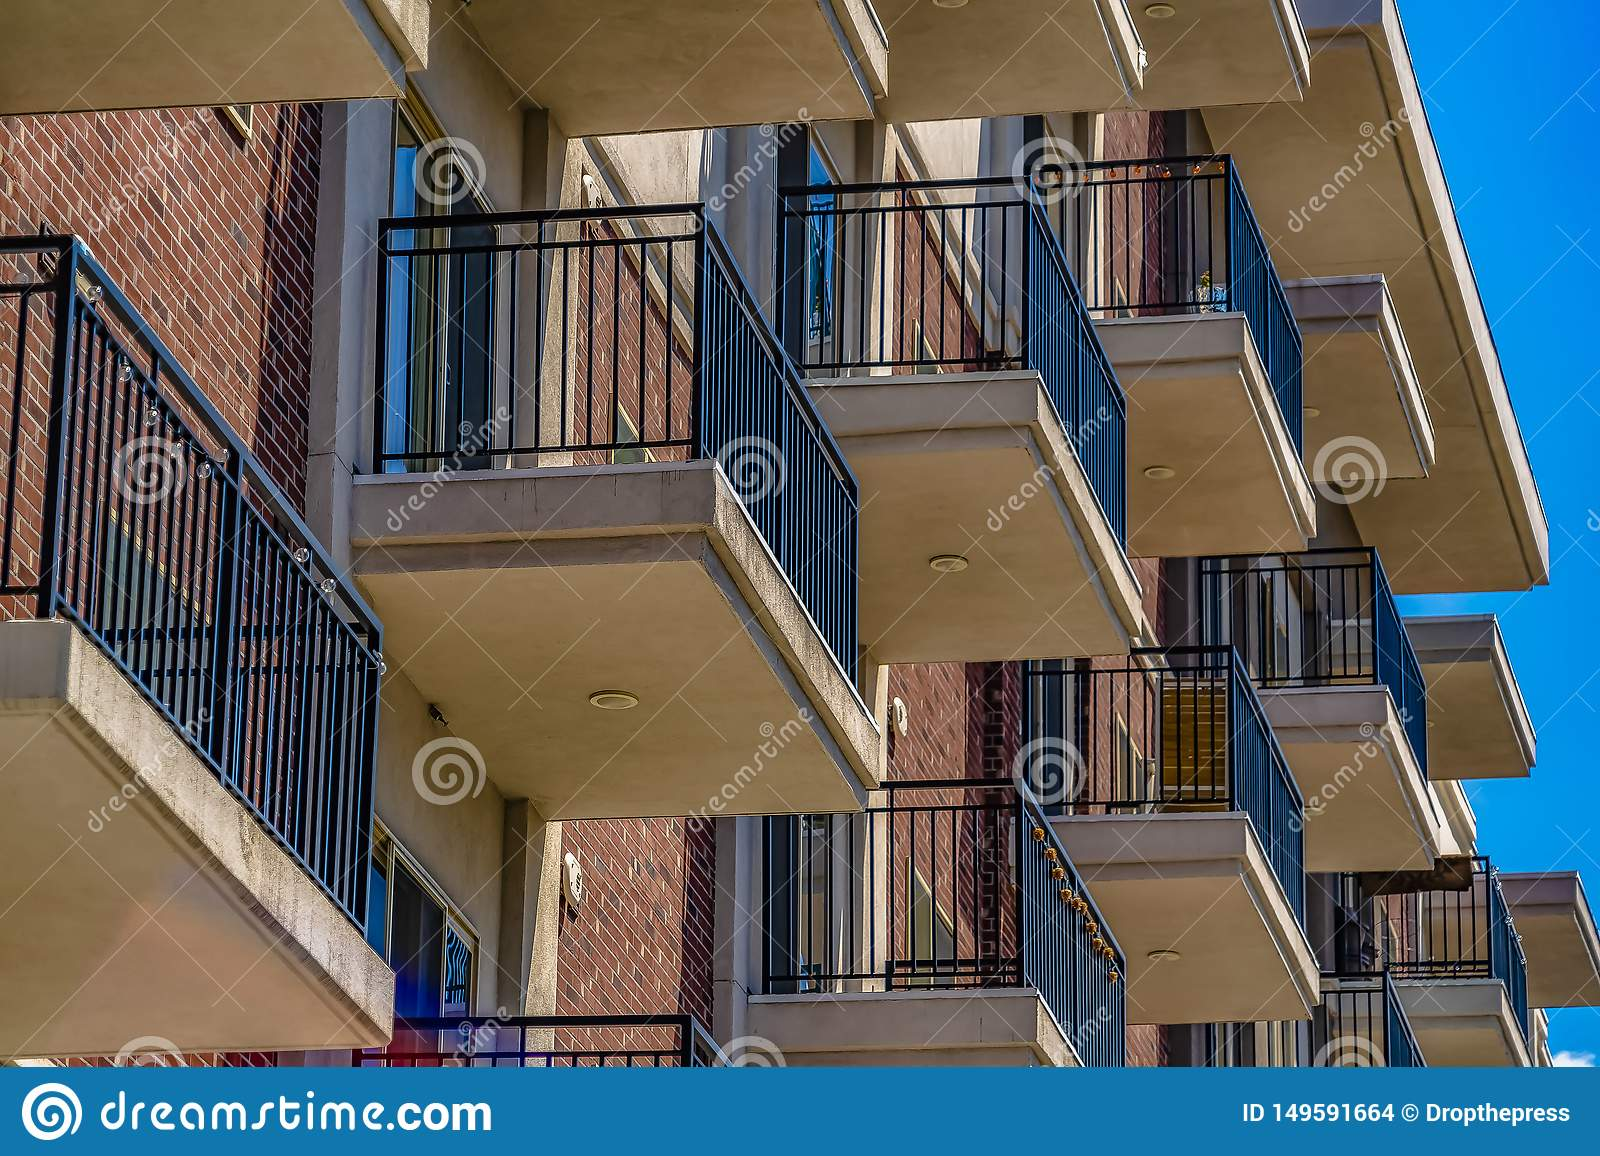 Close up of the small balconies of a residential building on a sunny day